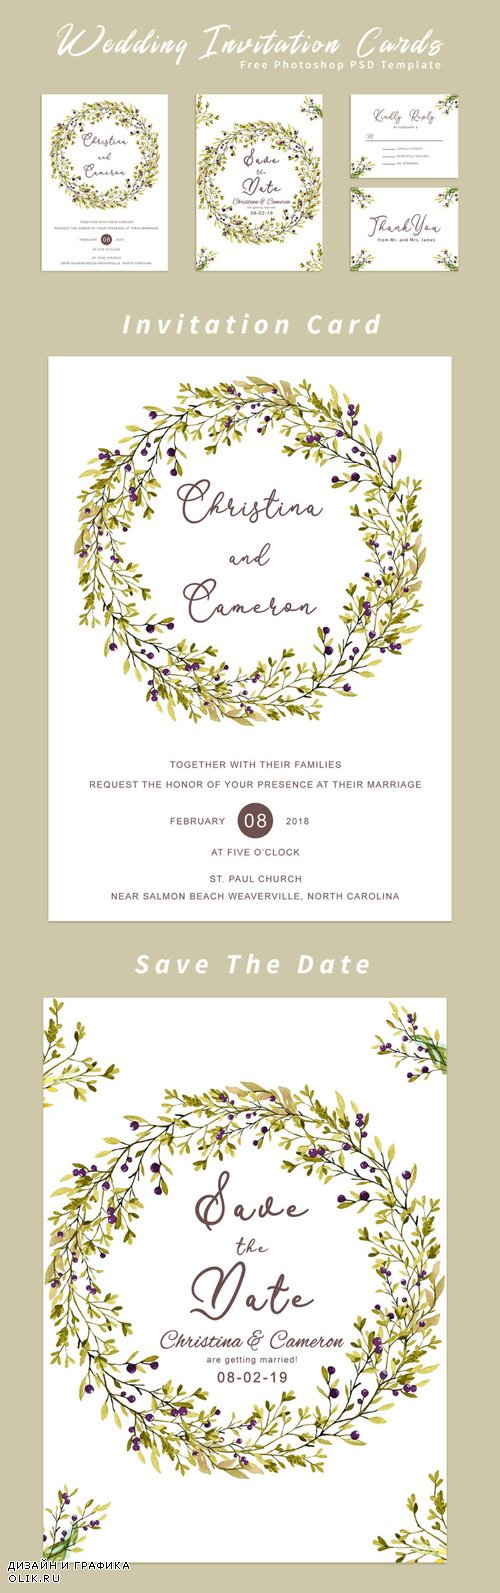 Wedding Invitation Cards - PSD Template